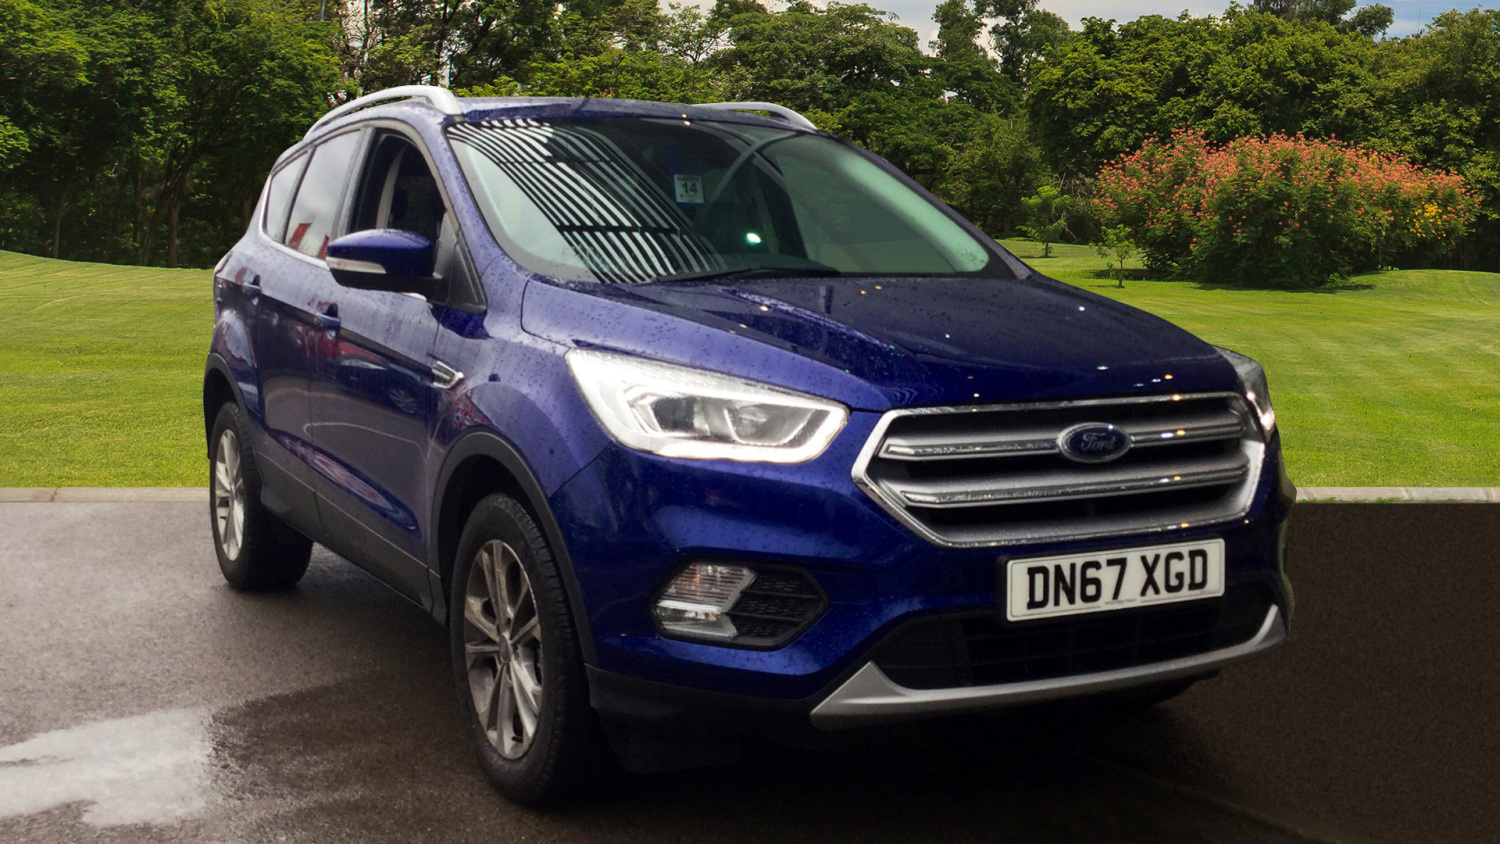 buy online ford kuga 2 0 tdci titanium 5dr 2wd diesel estate for sale bristol street motors. Black Bedroom Furniture Sets. Home Design Ideas